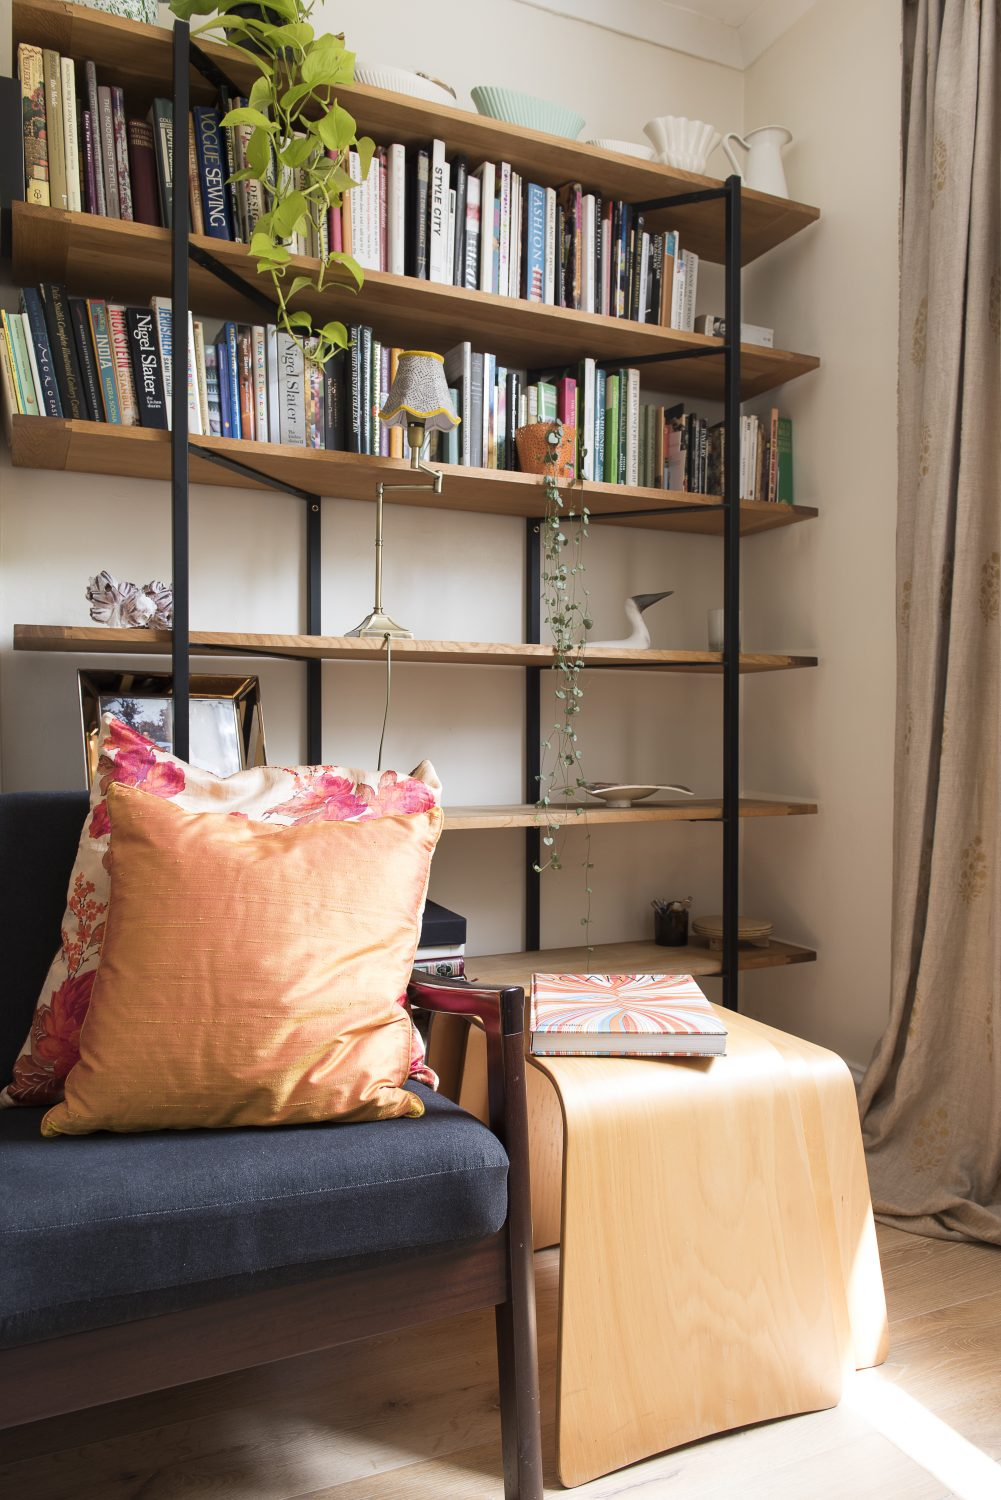 The living space had already been knocked through. The denim-covered sofa is by Danish designer Peter Jeppesen and the coffee table is from Heals. The shelving unit, left, is vintage Habitat